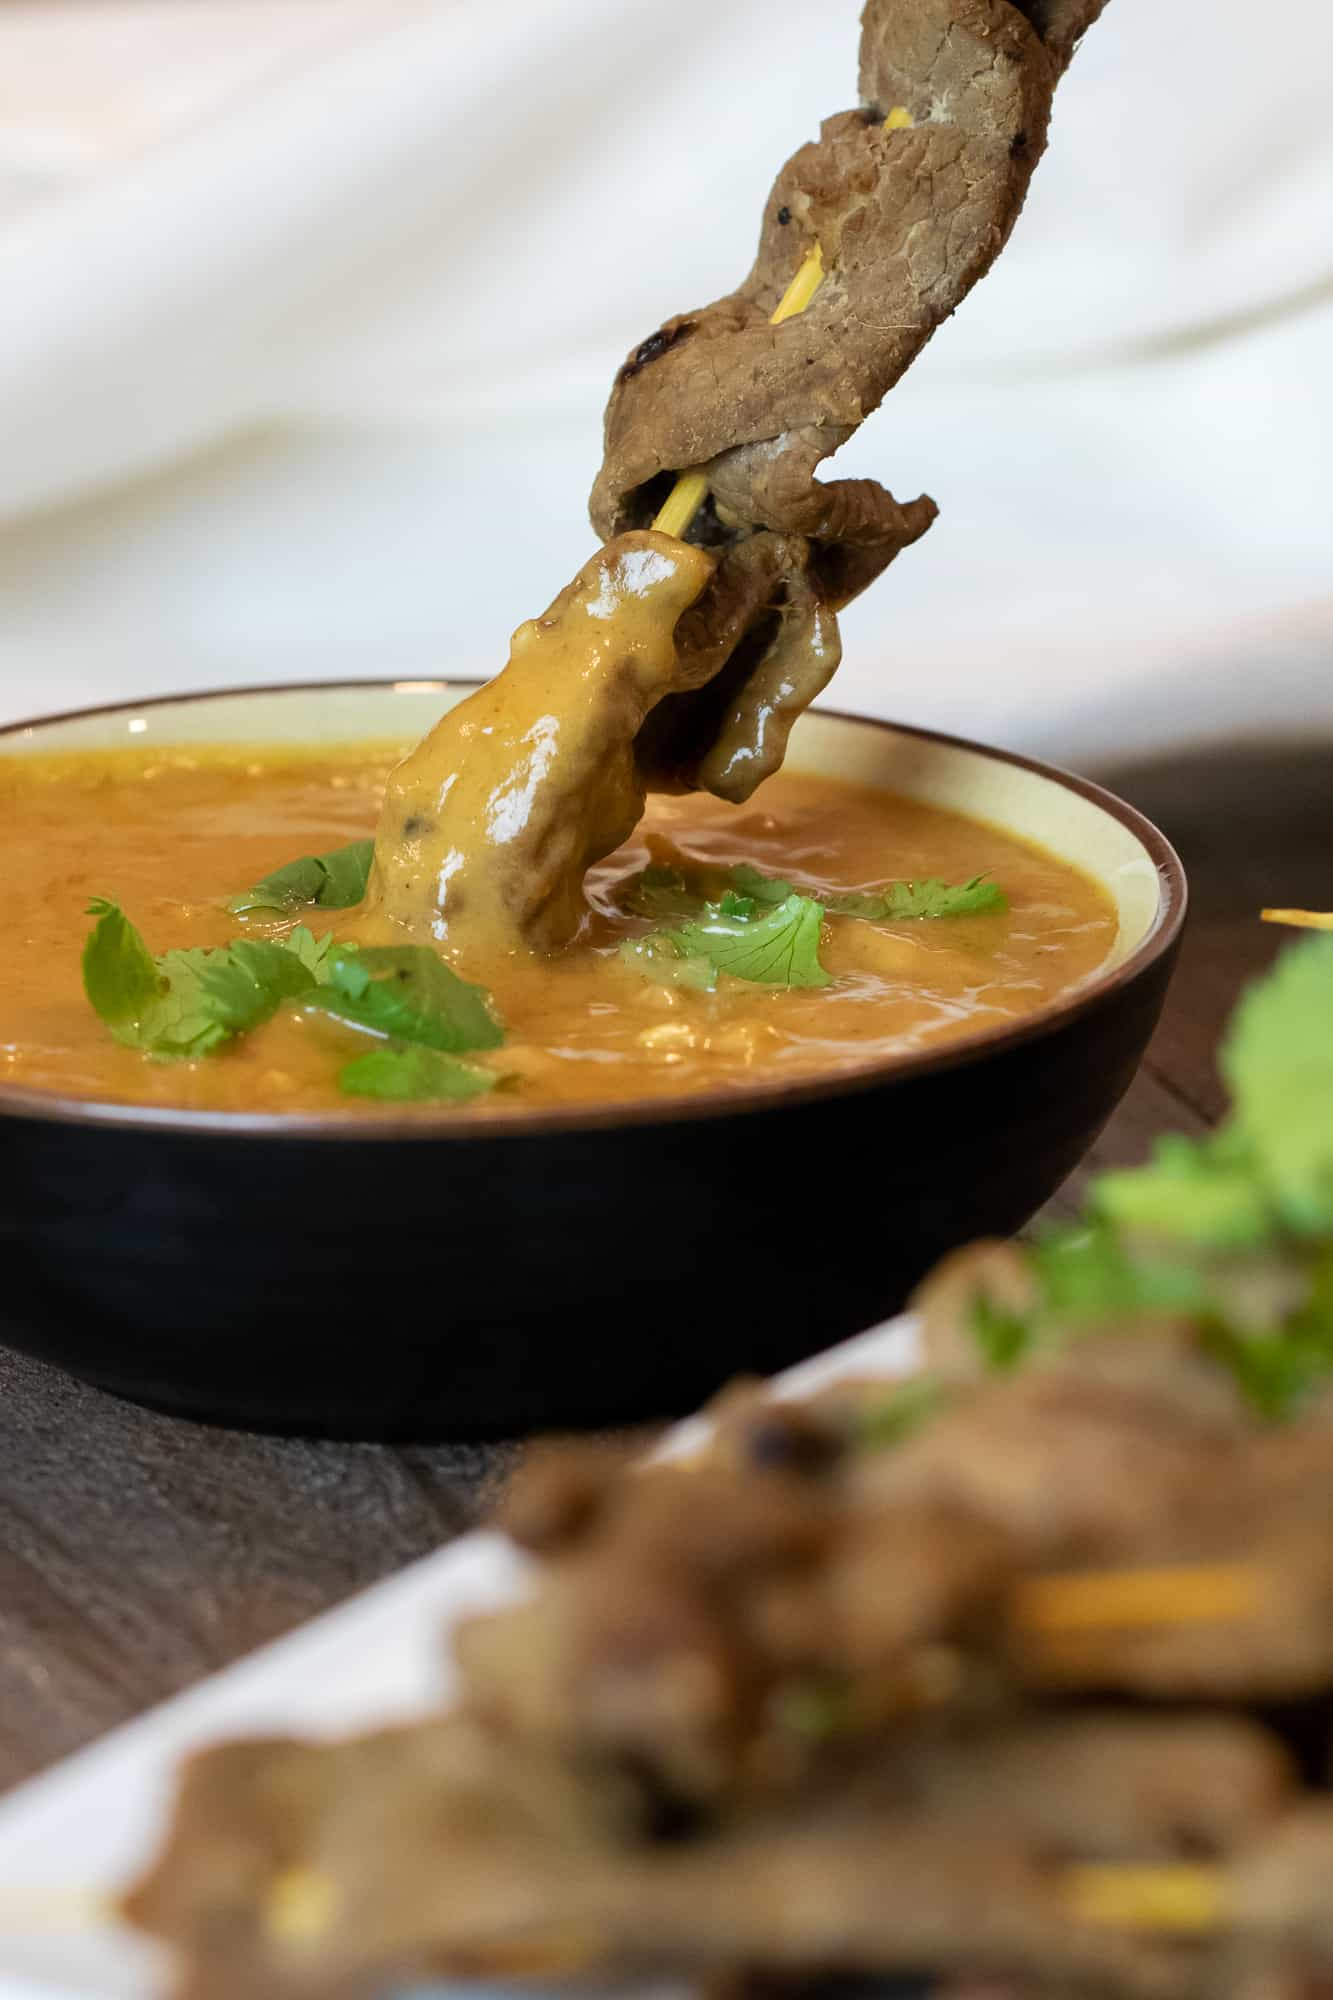 Beef satay dipped in a bowl of Thai peanut sauce